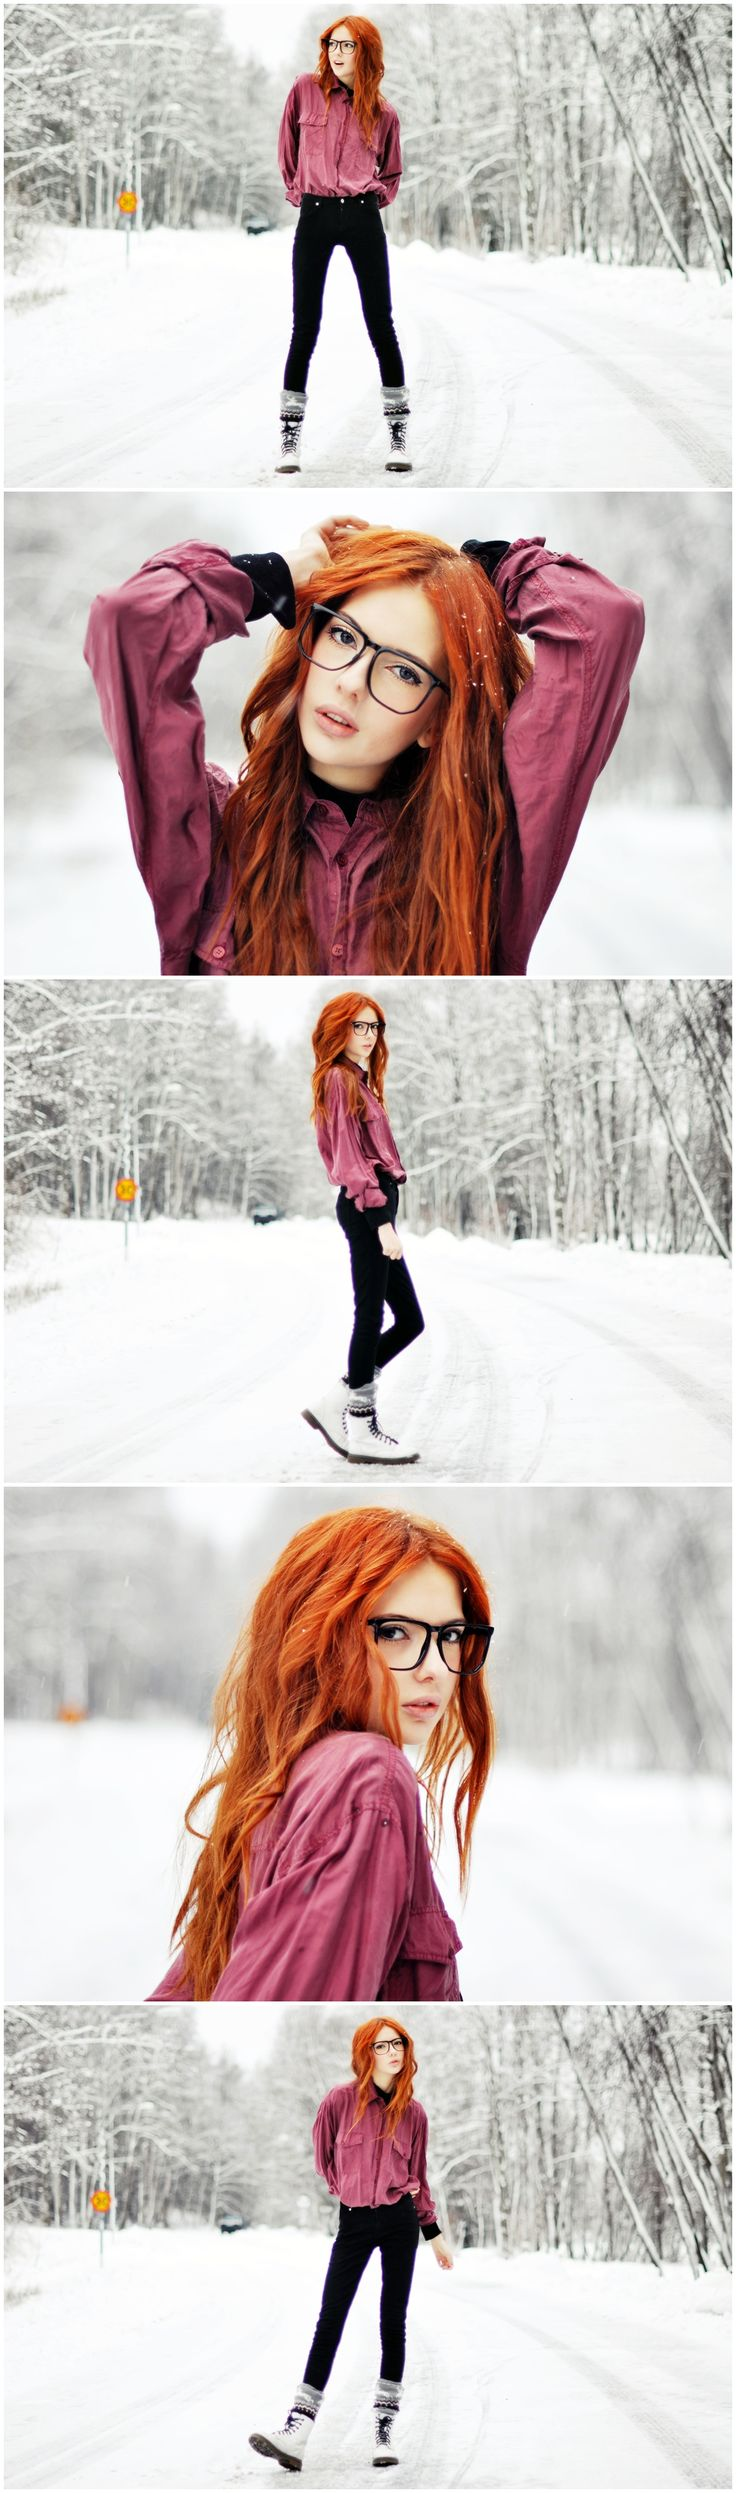 Winter Senior Picture Ideas for Girls | Senior Posing | #seniorpictureideasforgirls #seniorposing #wintersenior